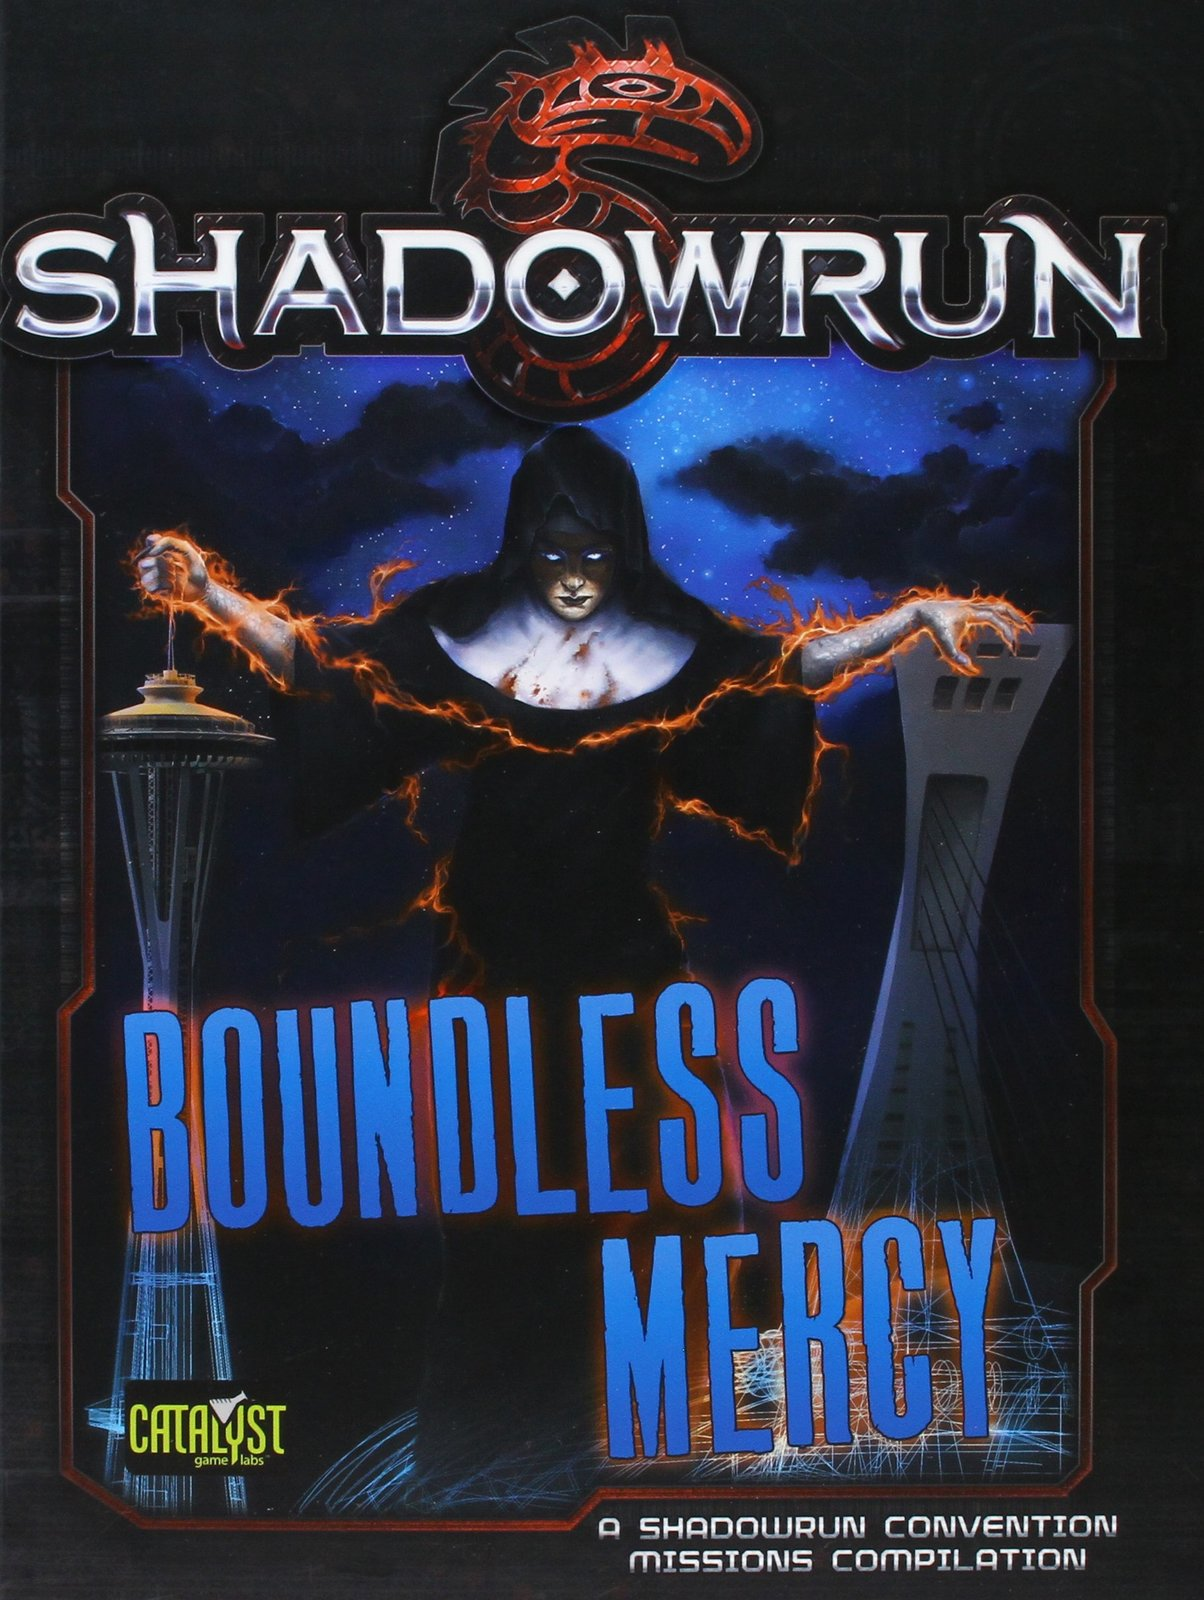 Shadowrun RPG: Boundless Mercy - Mission Compilation image